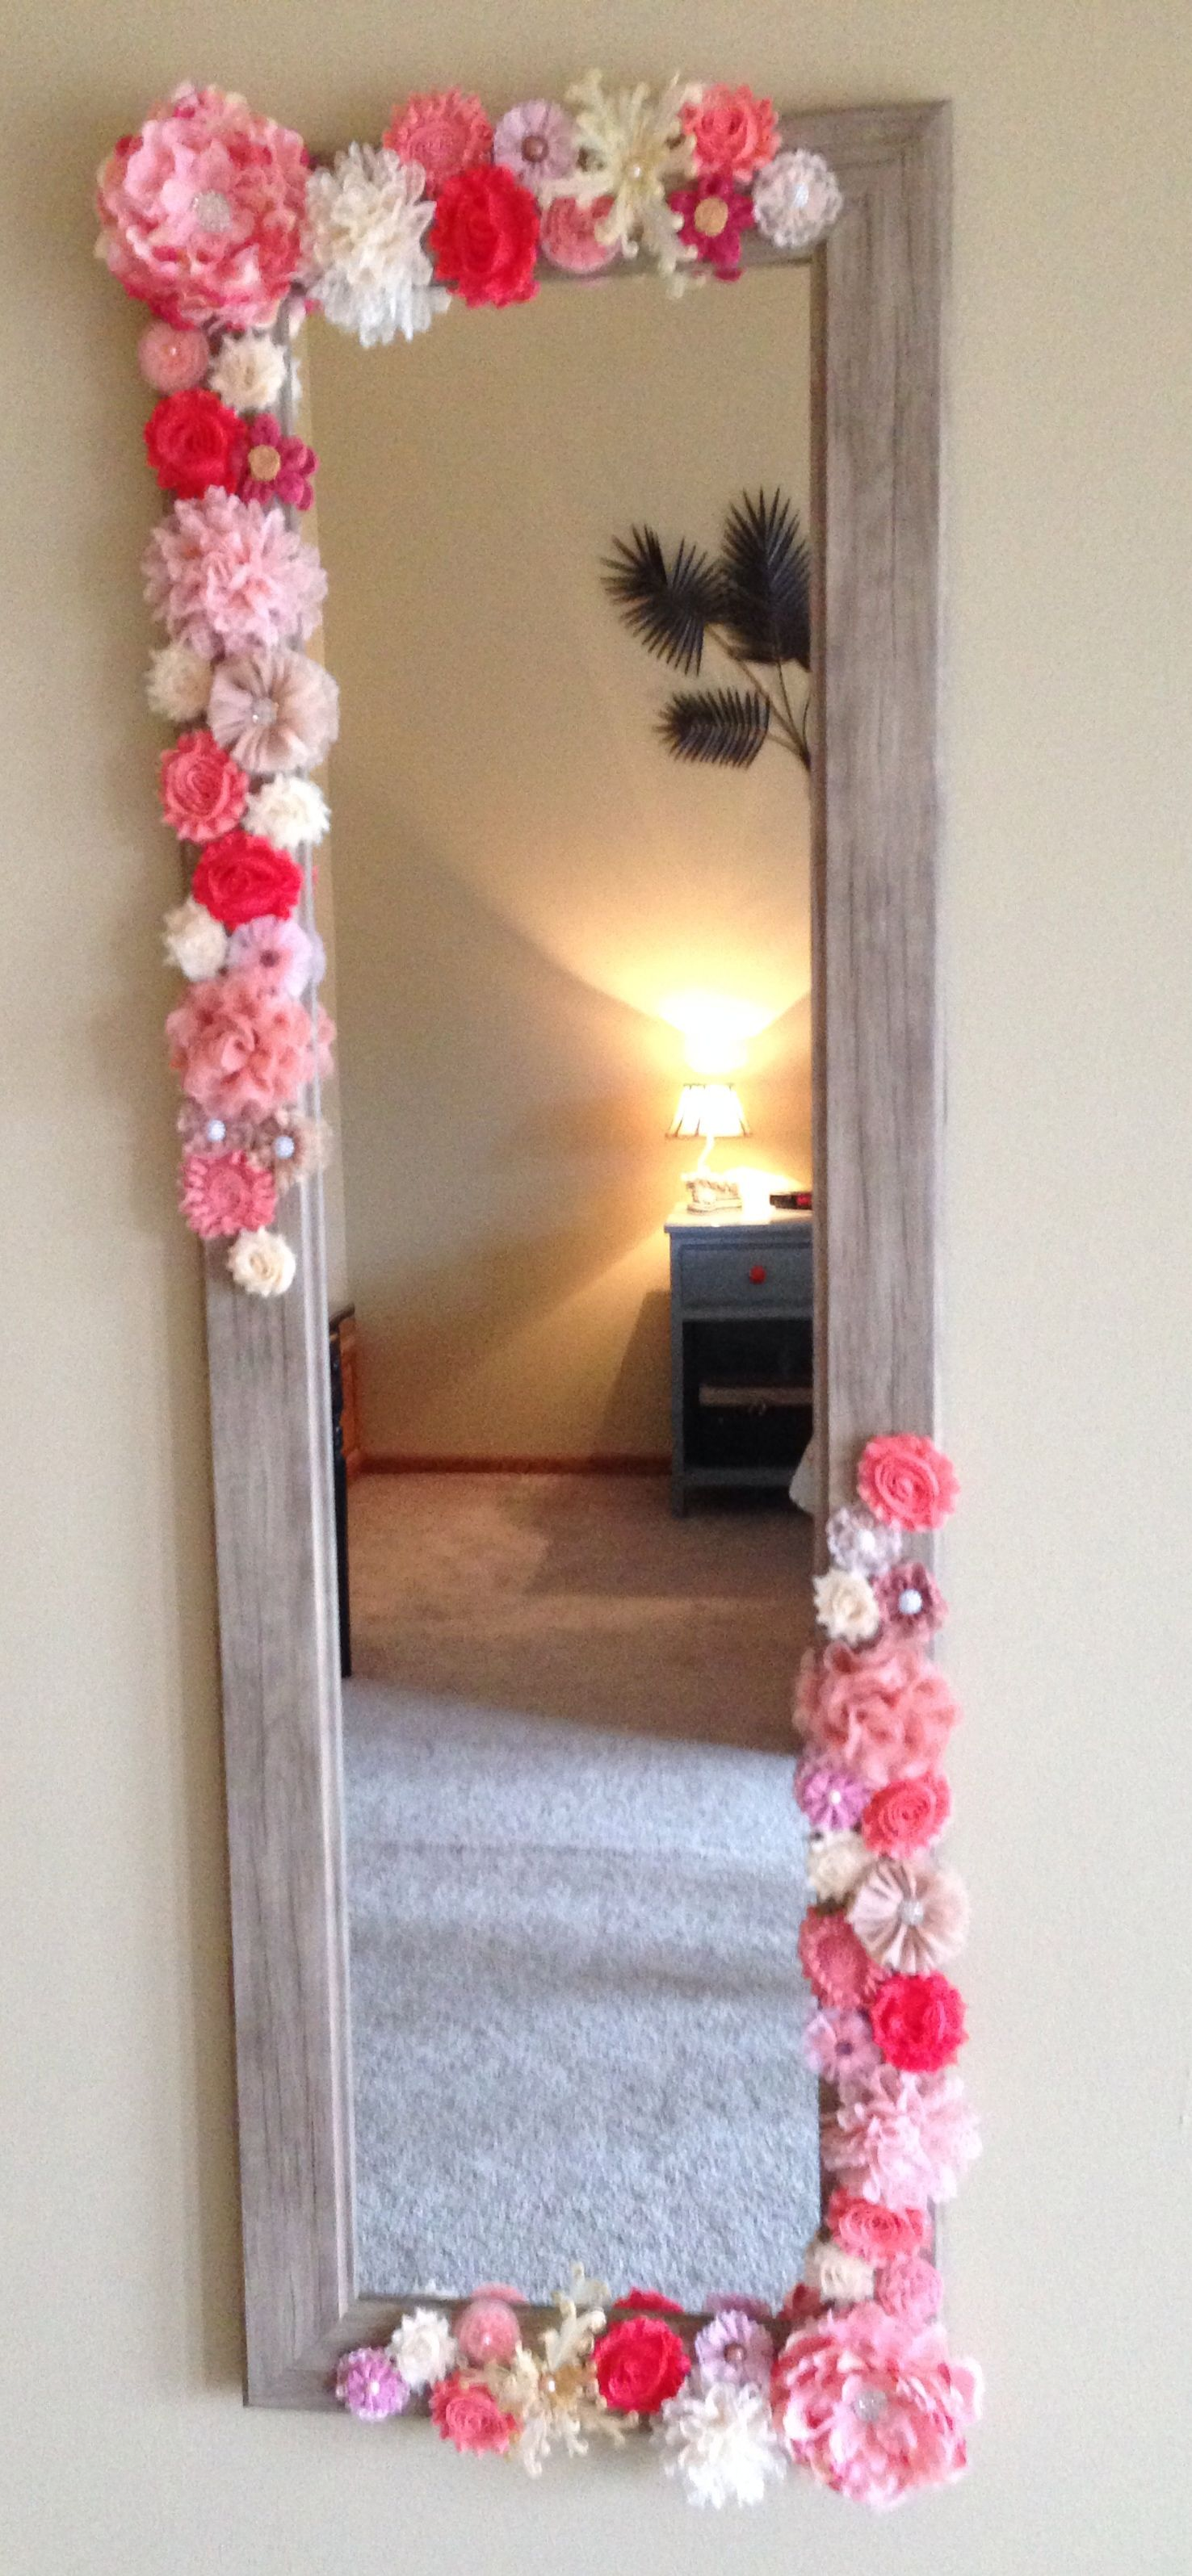 34 diy dorm room decor projects to spice up your room fabric